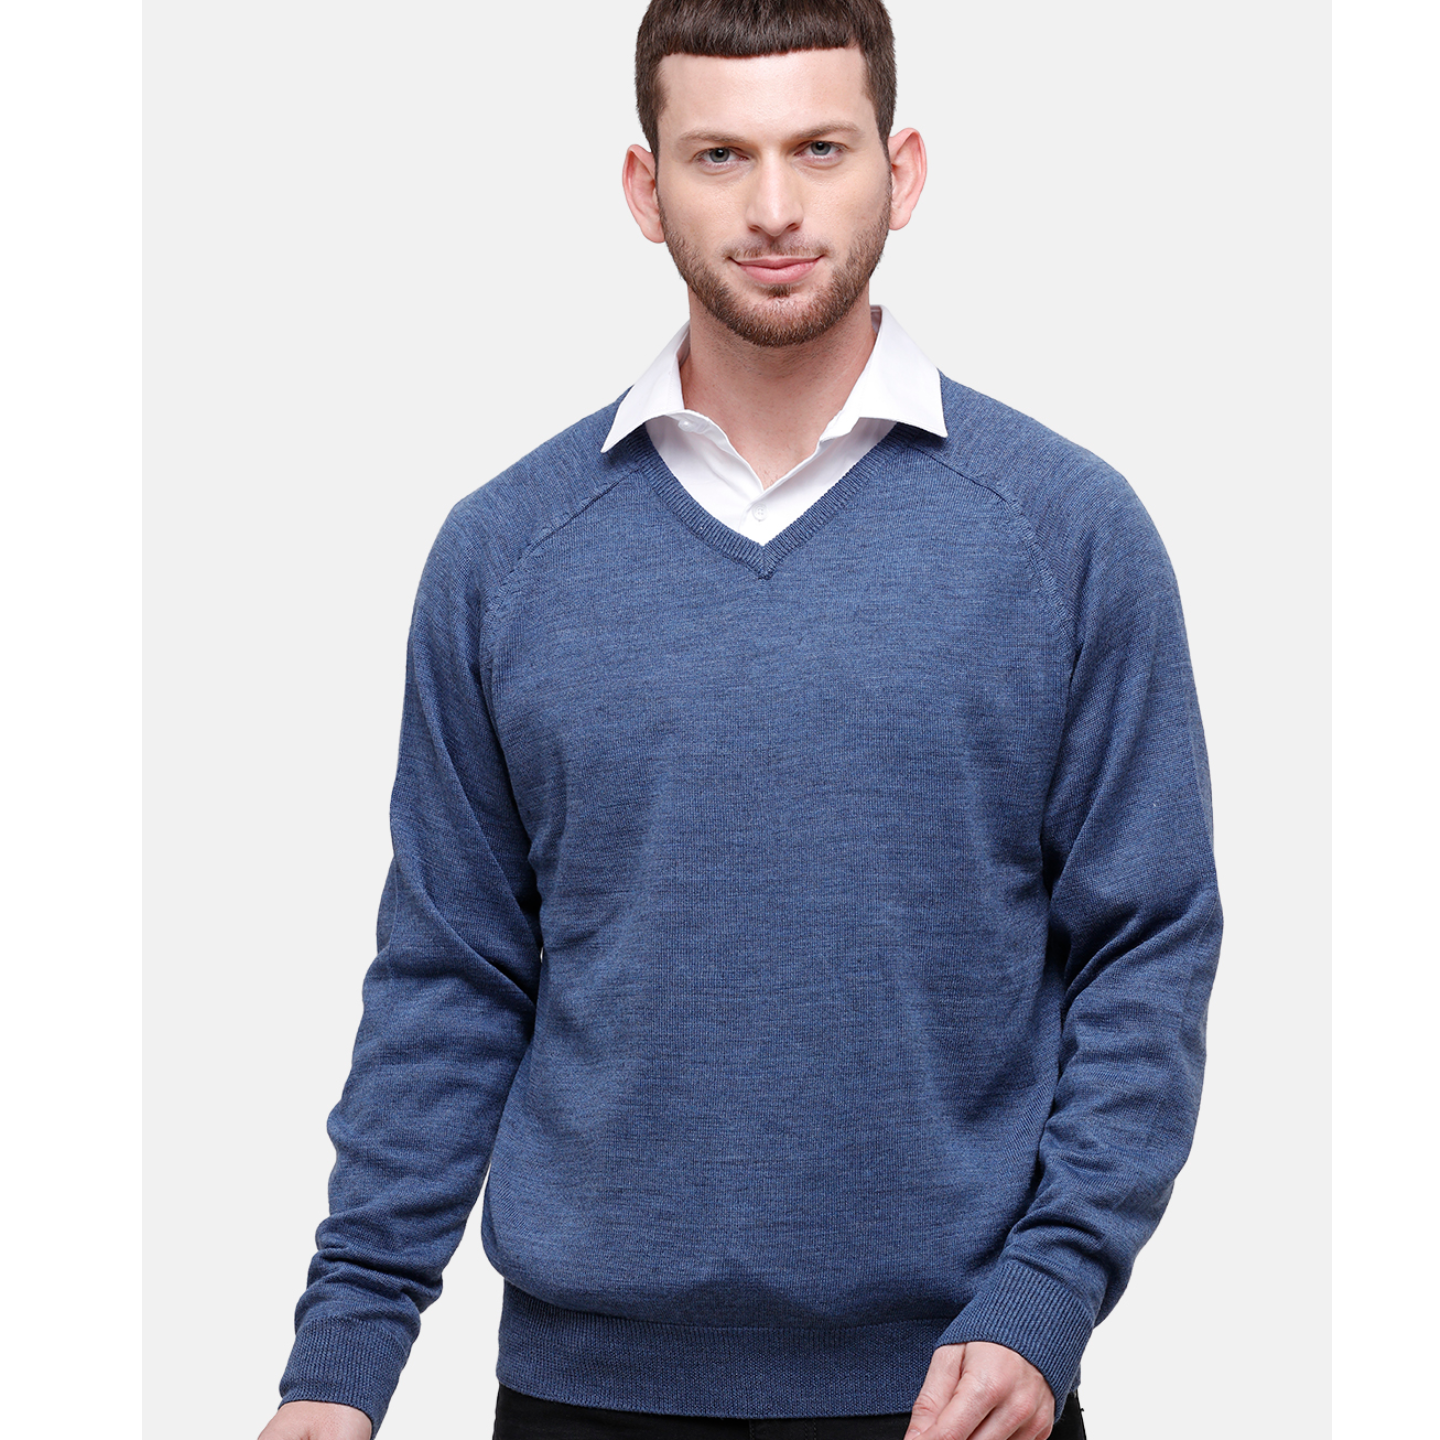 Wool Blend Blue Sweater